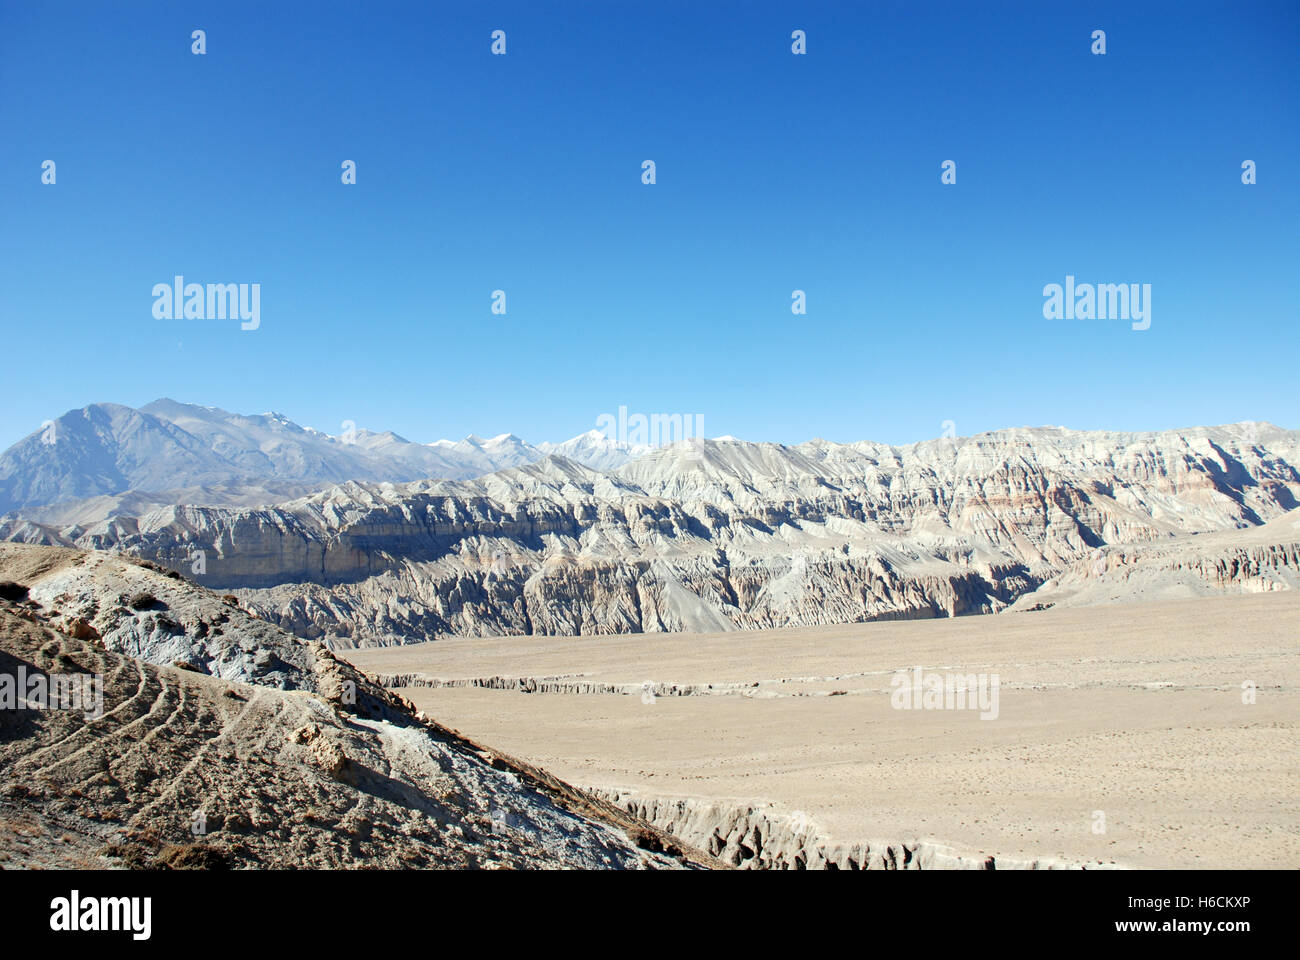 The Barren mountain landscape of the remote Damodar Himal in the Mustang region of Nepal an area first visited by - Stock Image